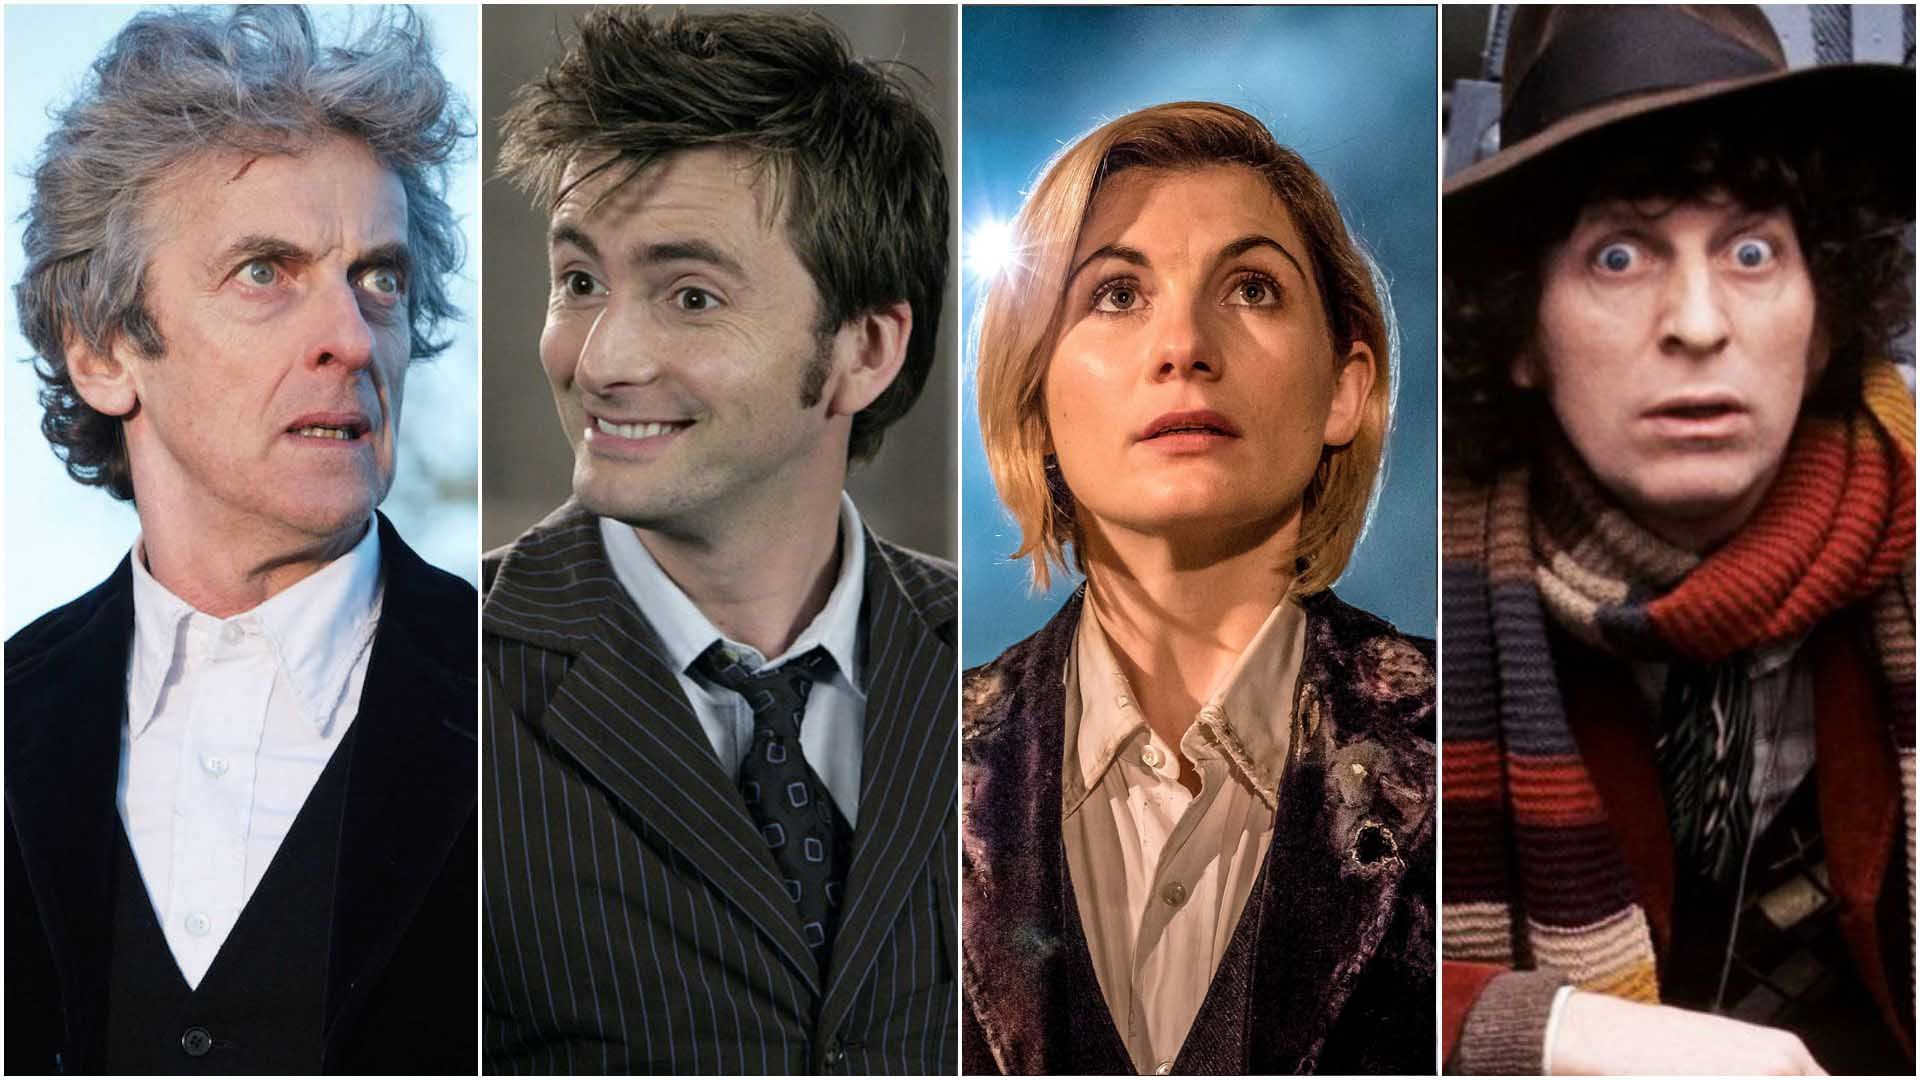 Who Is The Best Doctor Who According To The Fans